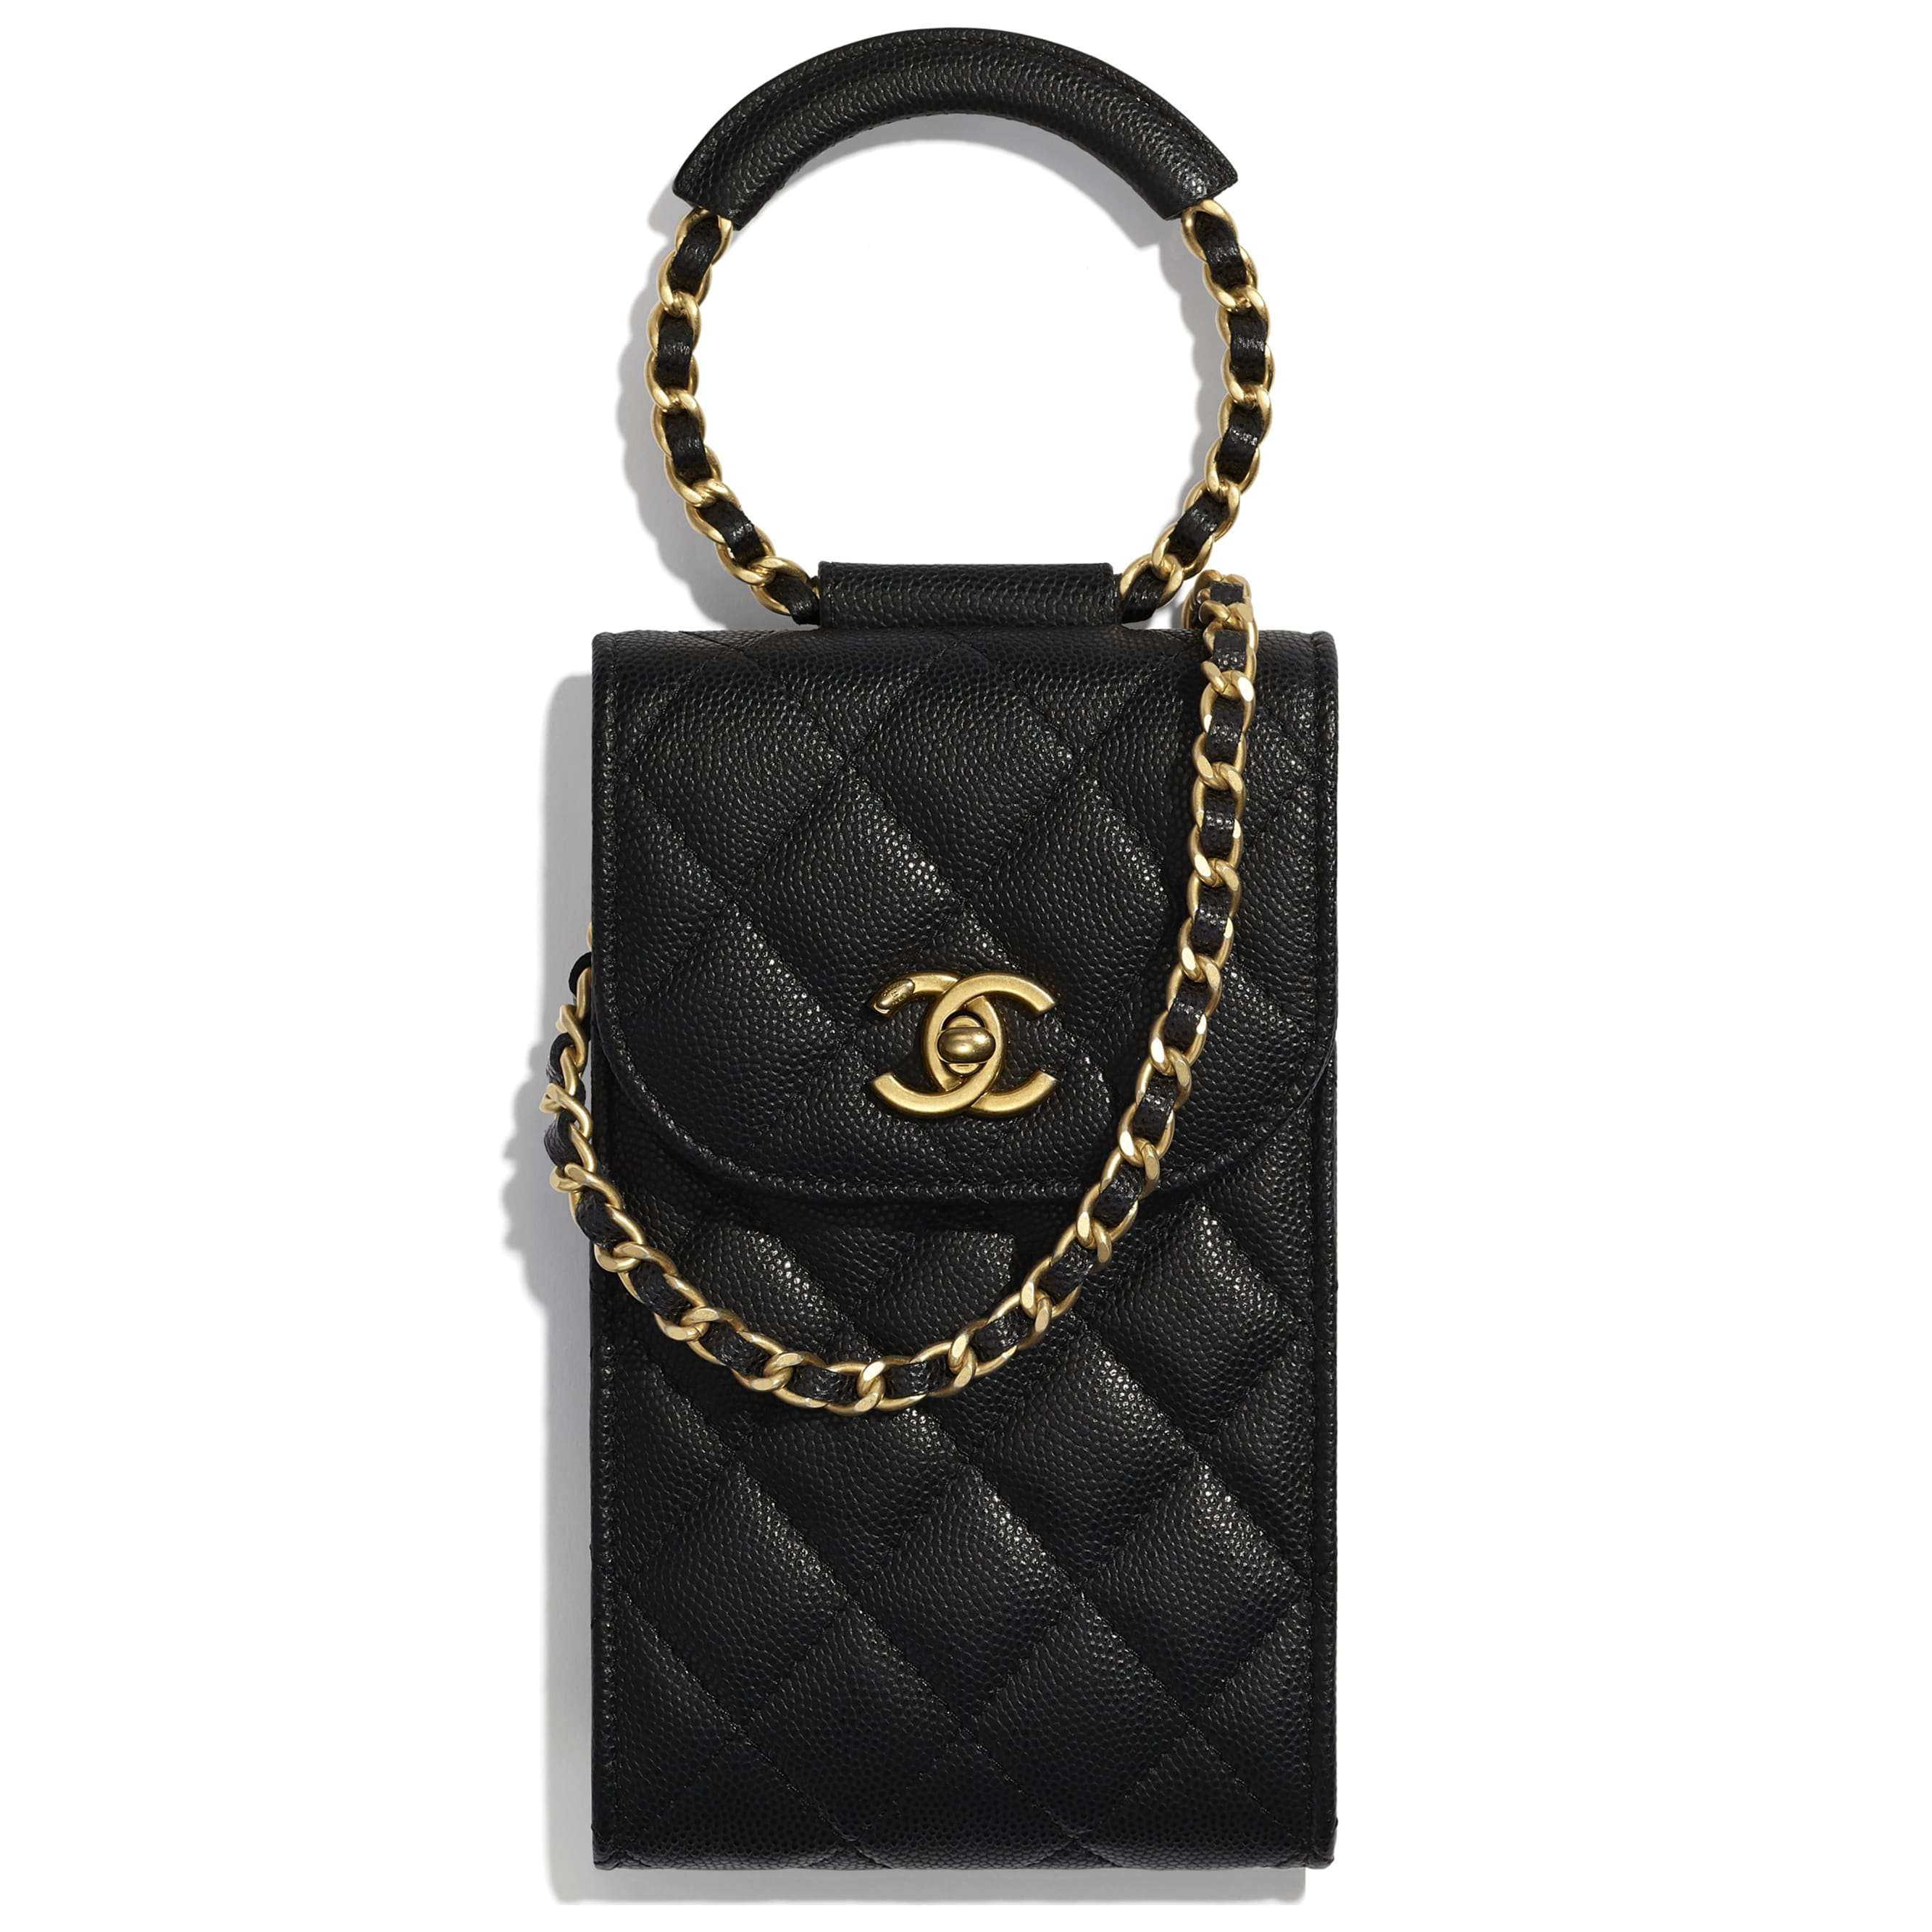 Phone Holder With Chain - Black - Grained Shiny Calfskin & Gold-Tone Metal - CHANEL - Default view - see standard sized version